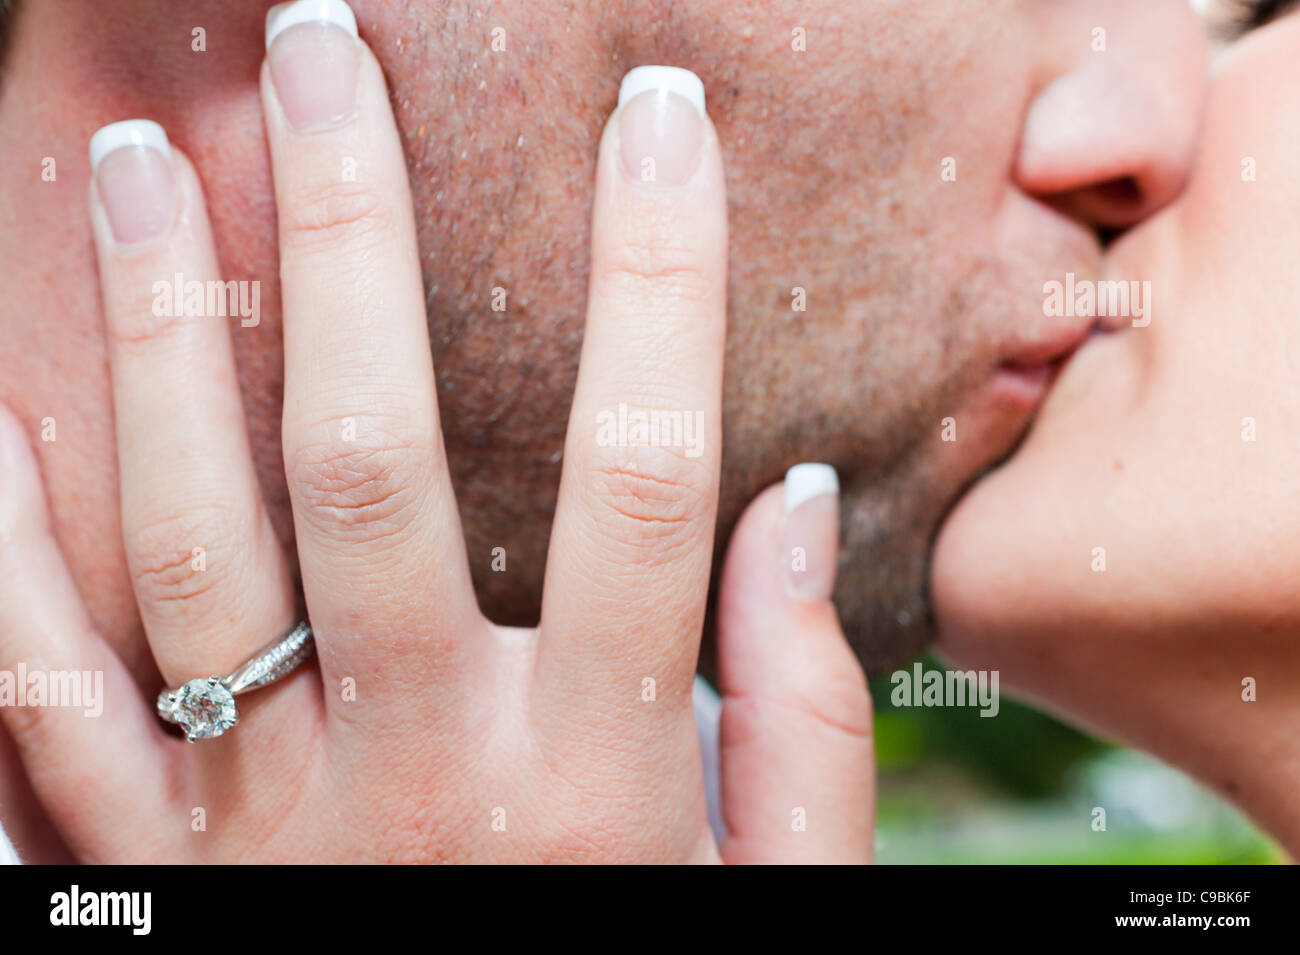 Fiancee Fiance Stock Photos & Fiancee Fiance Stock Images - Alamy